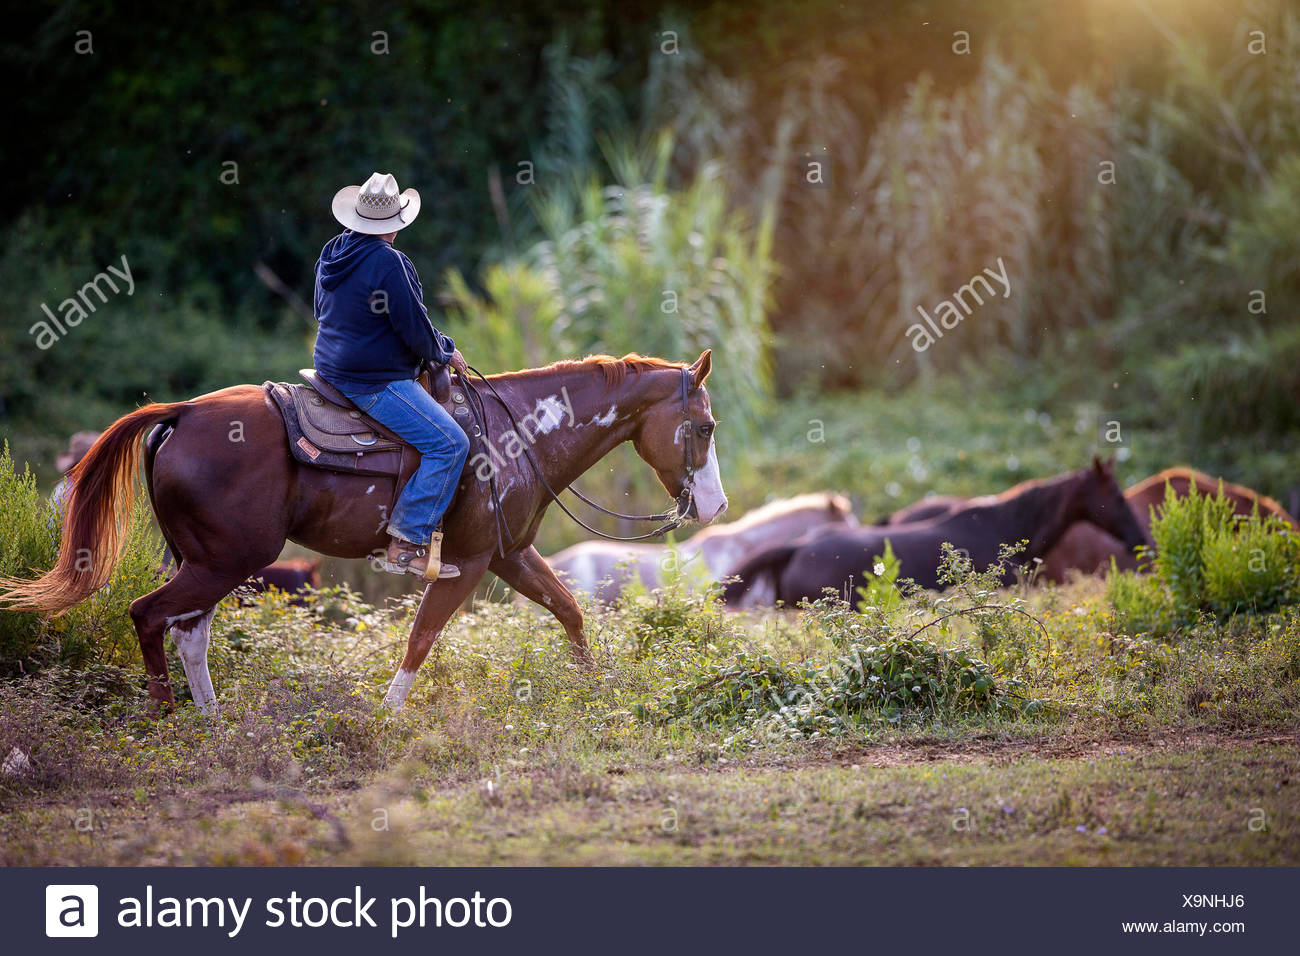 American Paint Horse Cowboy driving horses Italy Stock Photo